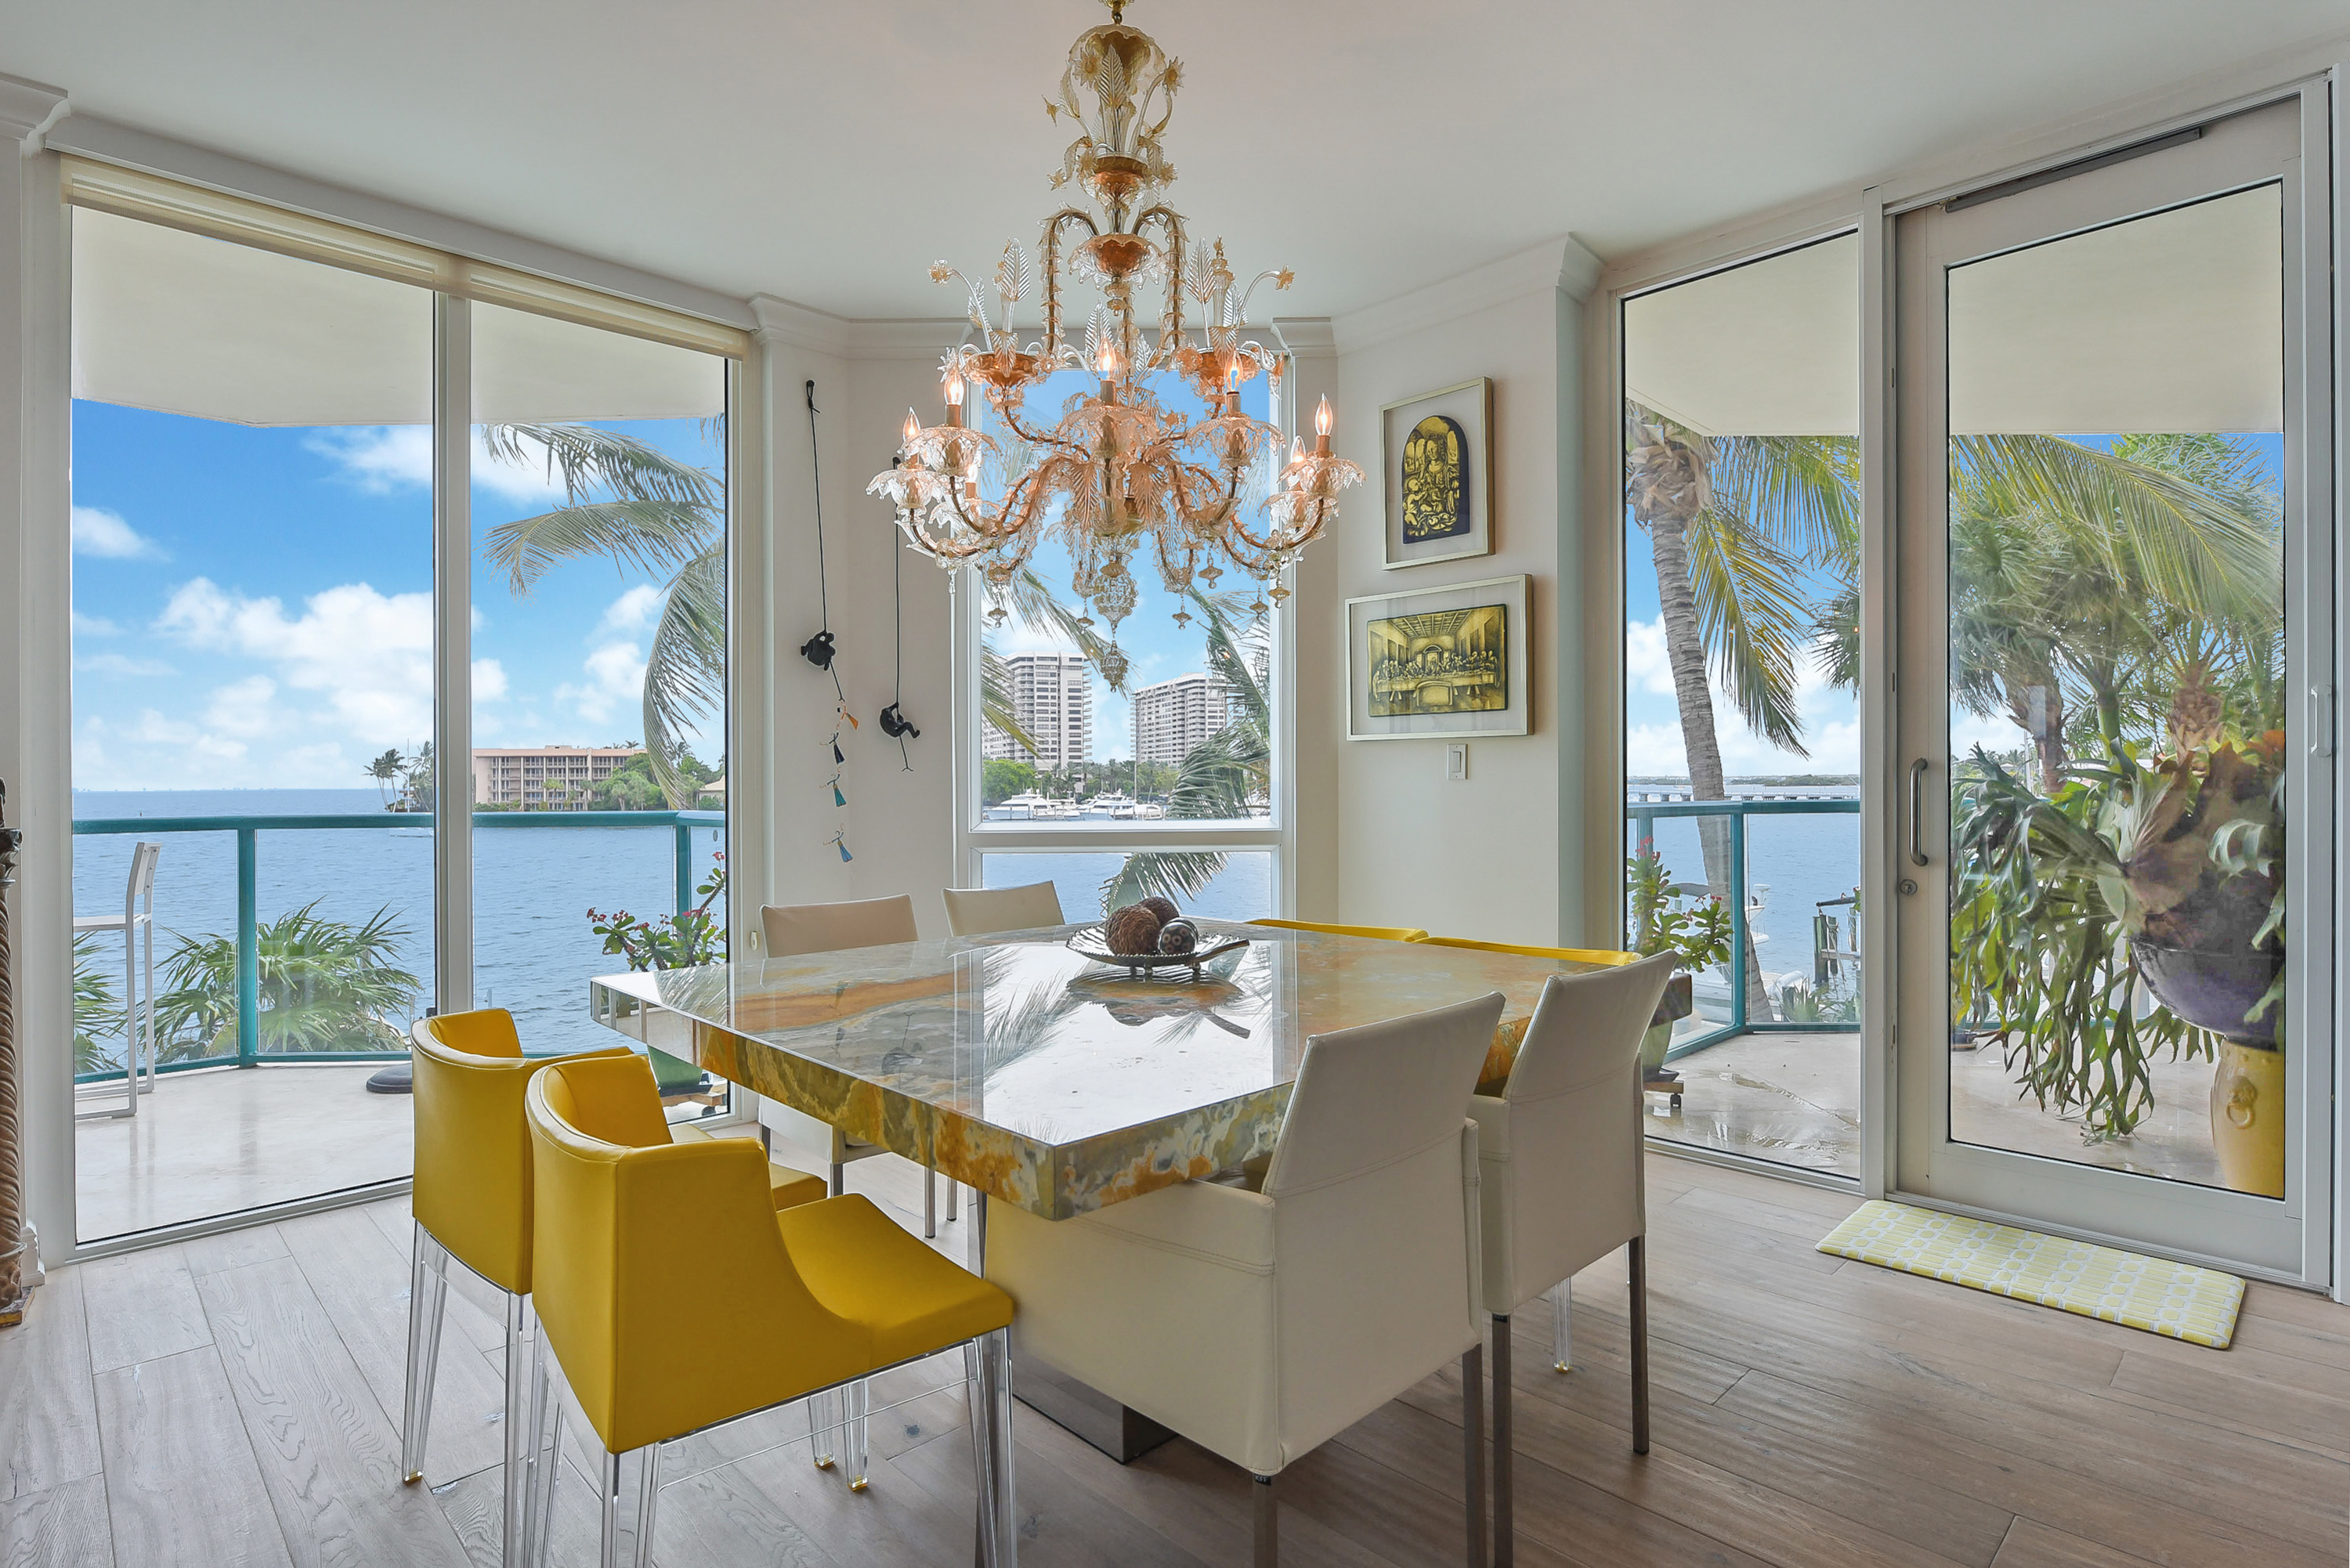 Waterfront condo in Coconut Grove